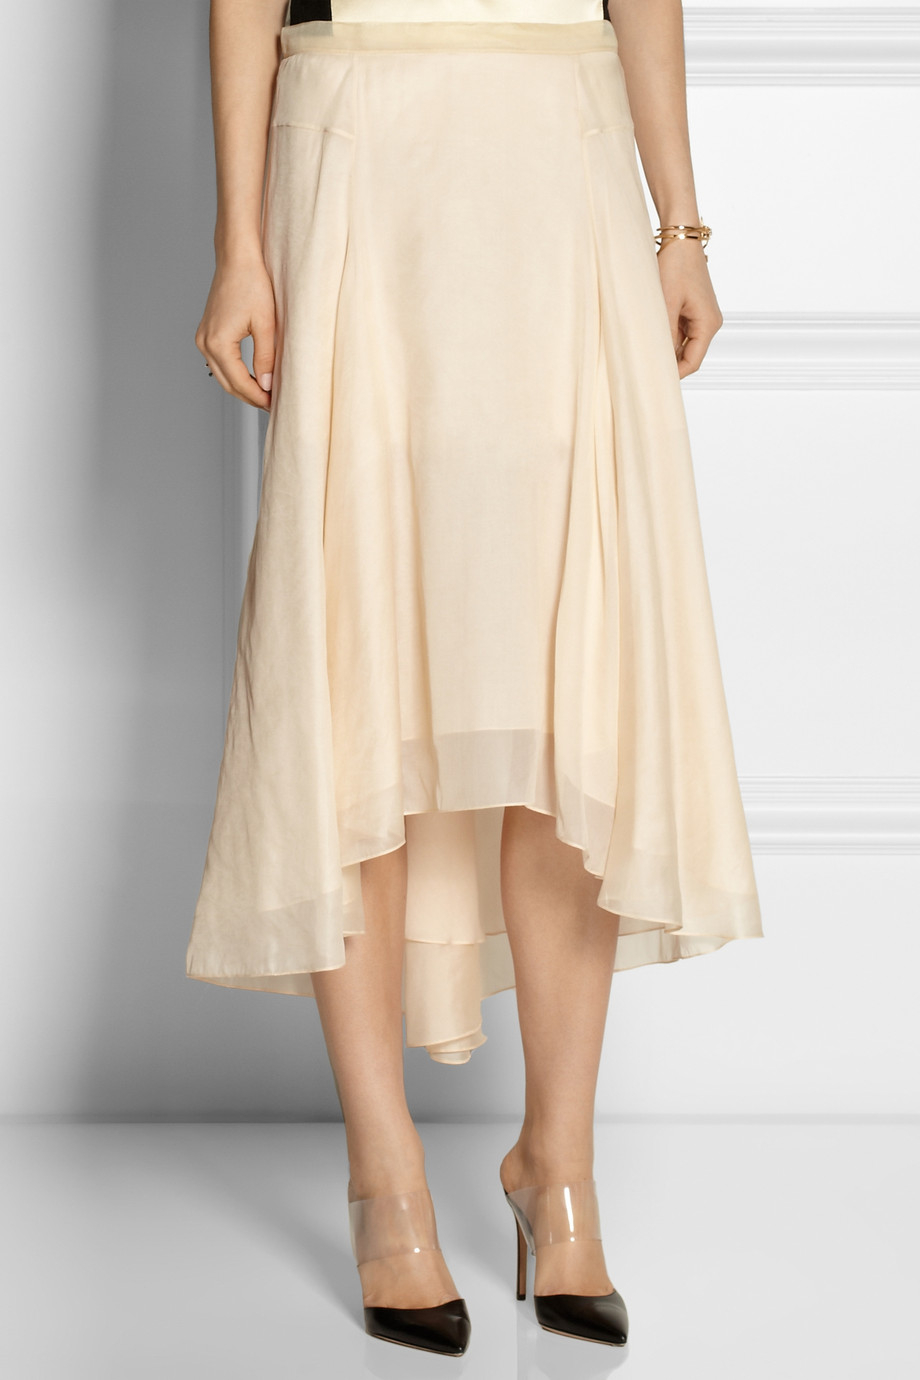 Reed krakoff Silk-chiffon Midi Skirt in Natural | Lyst